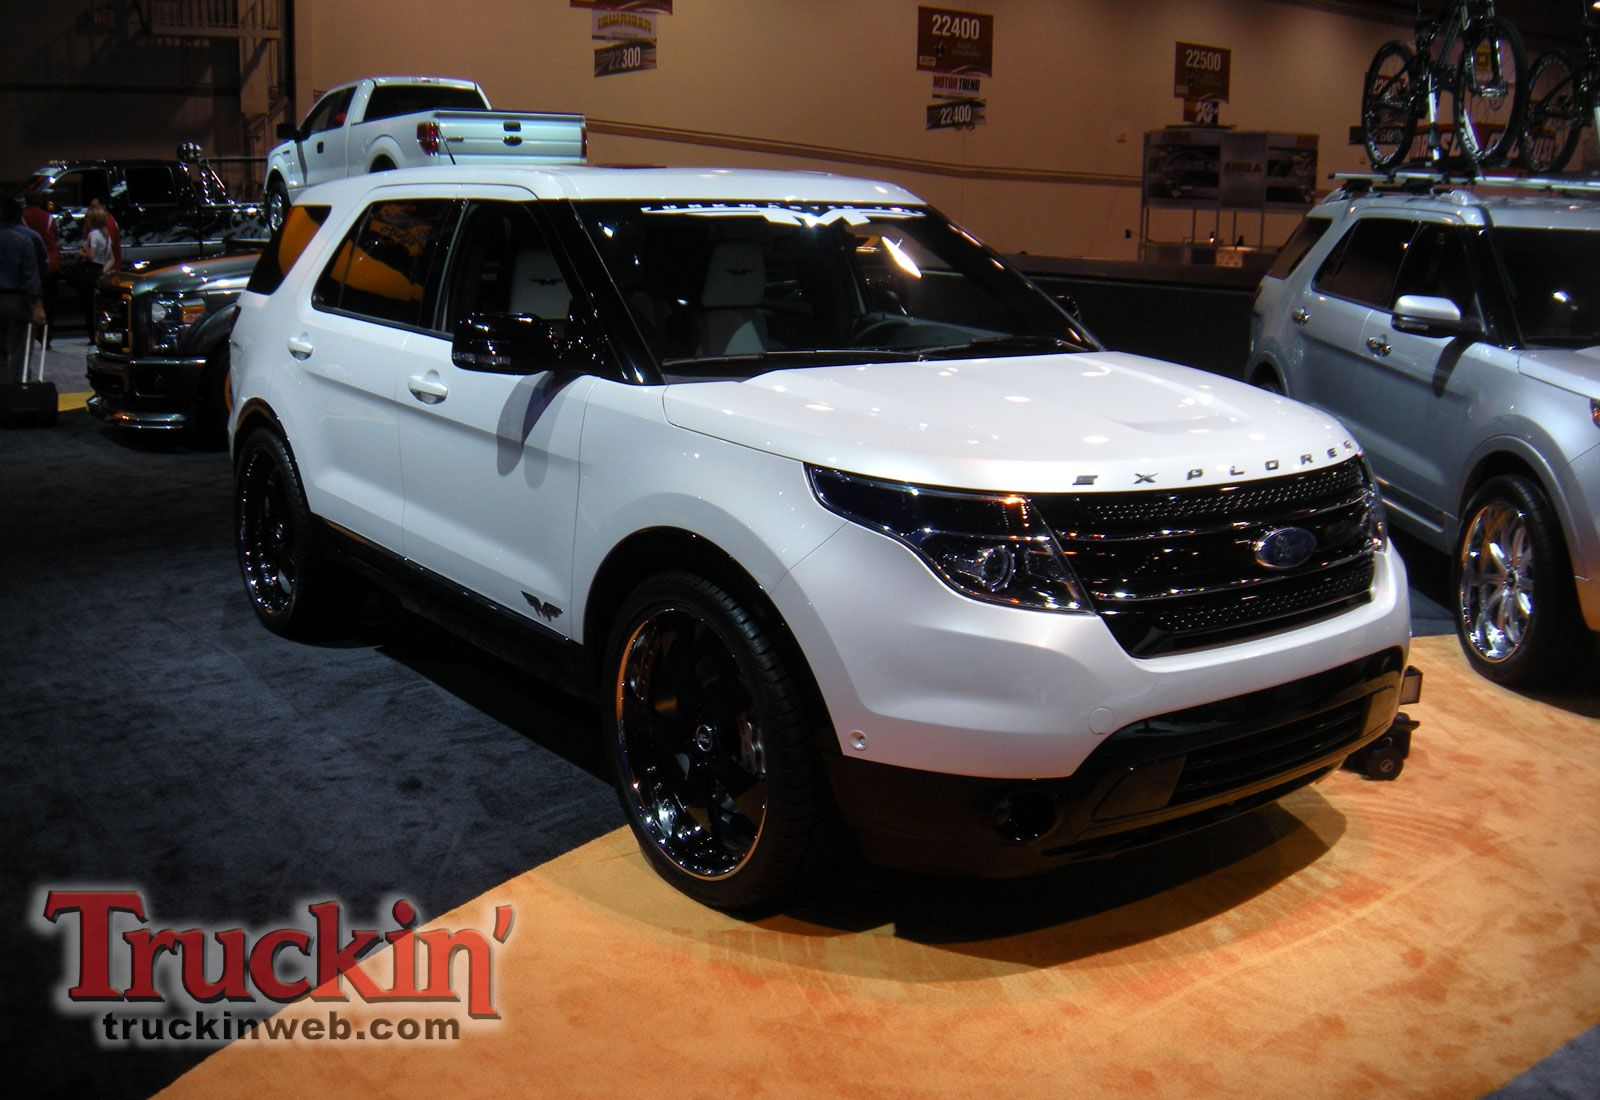 Pin by Michael Cowan on Dream Cars Ford explorer, White